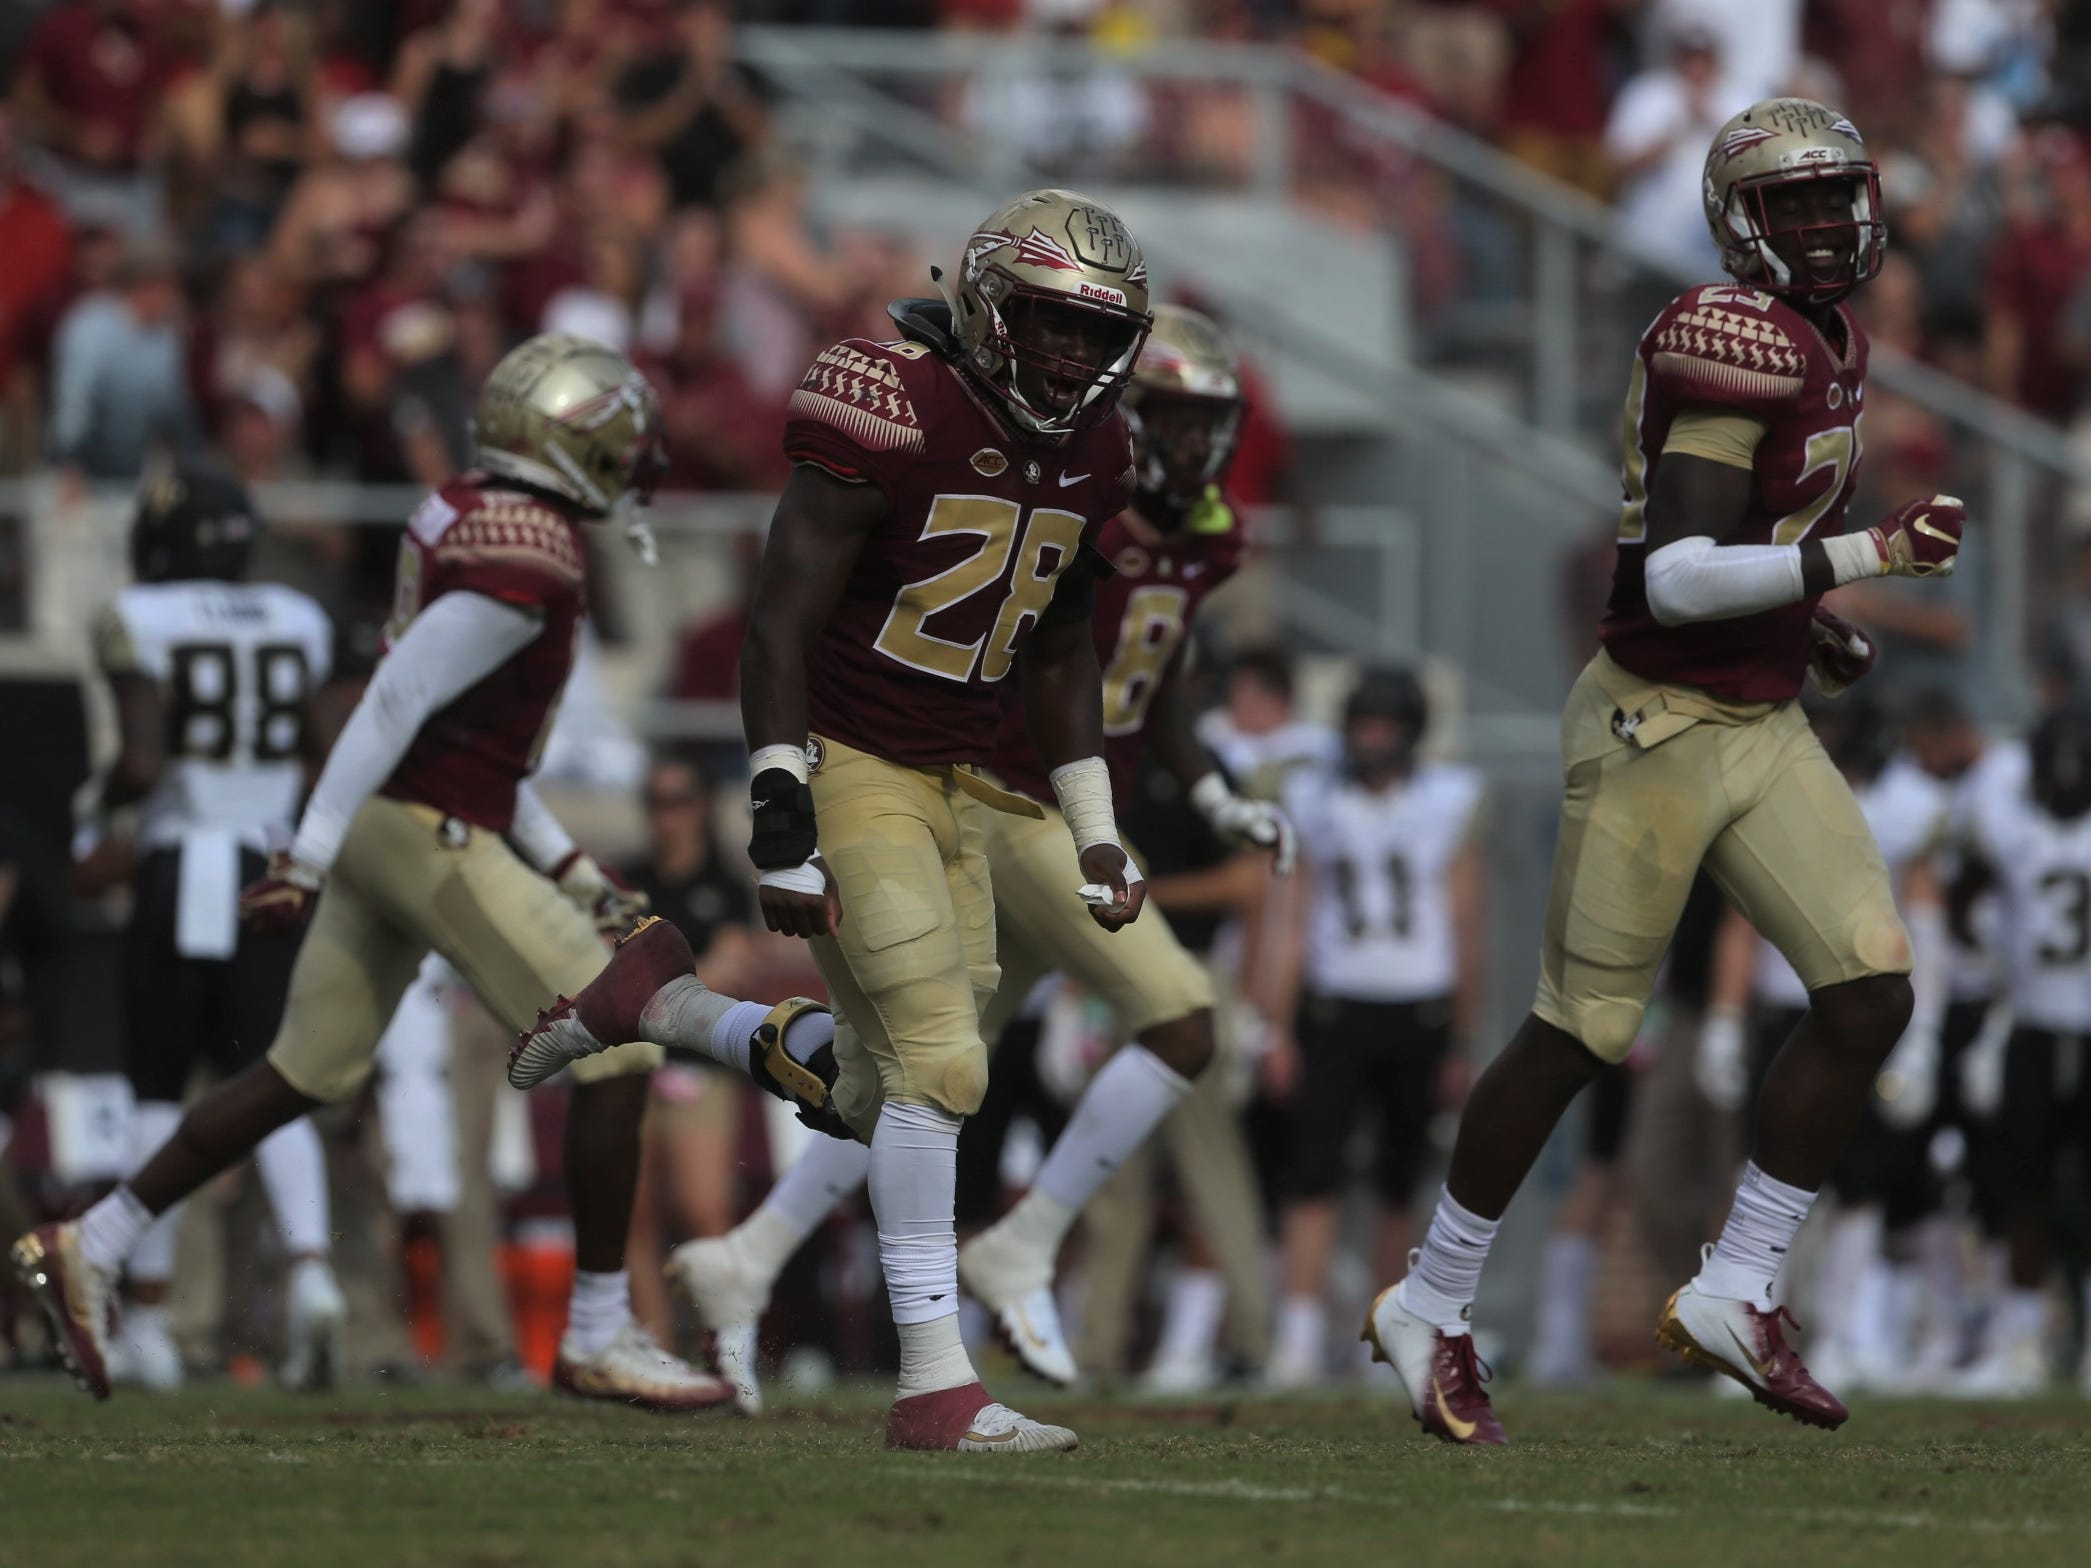 Florida State linebacker DeCalon Brooks celebrates a turnover against Wake Forest during a game at Doak Campbell Stadium on Saturday, Oct. 20, 2018.